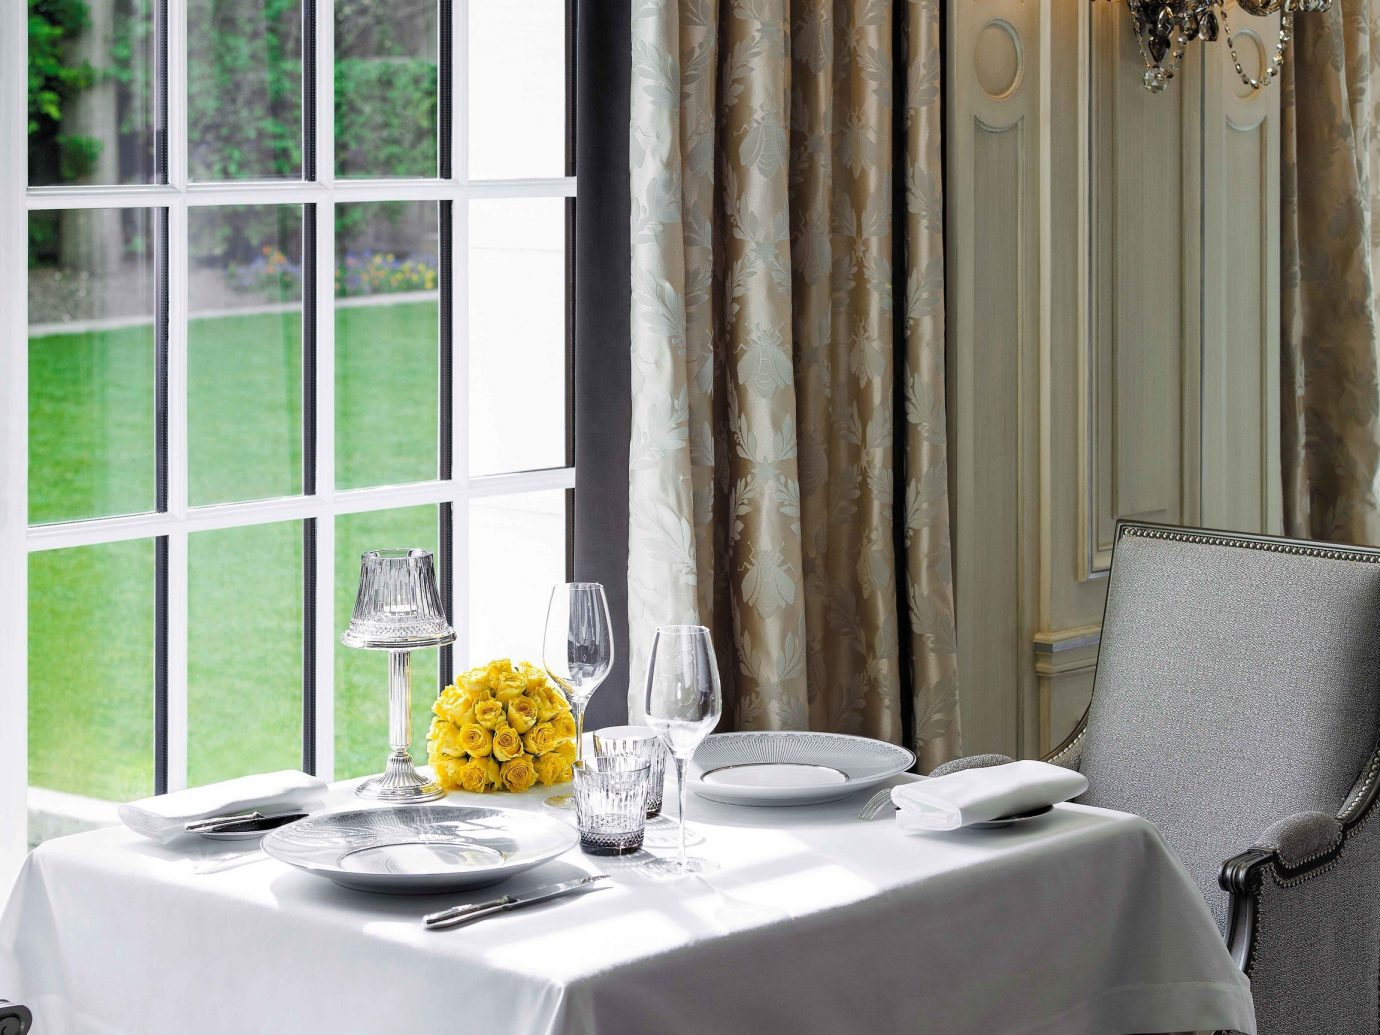 Food + Drink Romance indoor table furniture room interior design window tablecloth dining room home curtain textile window treatment window covering chair restaurant living room linens home accessories shade